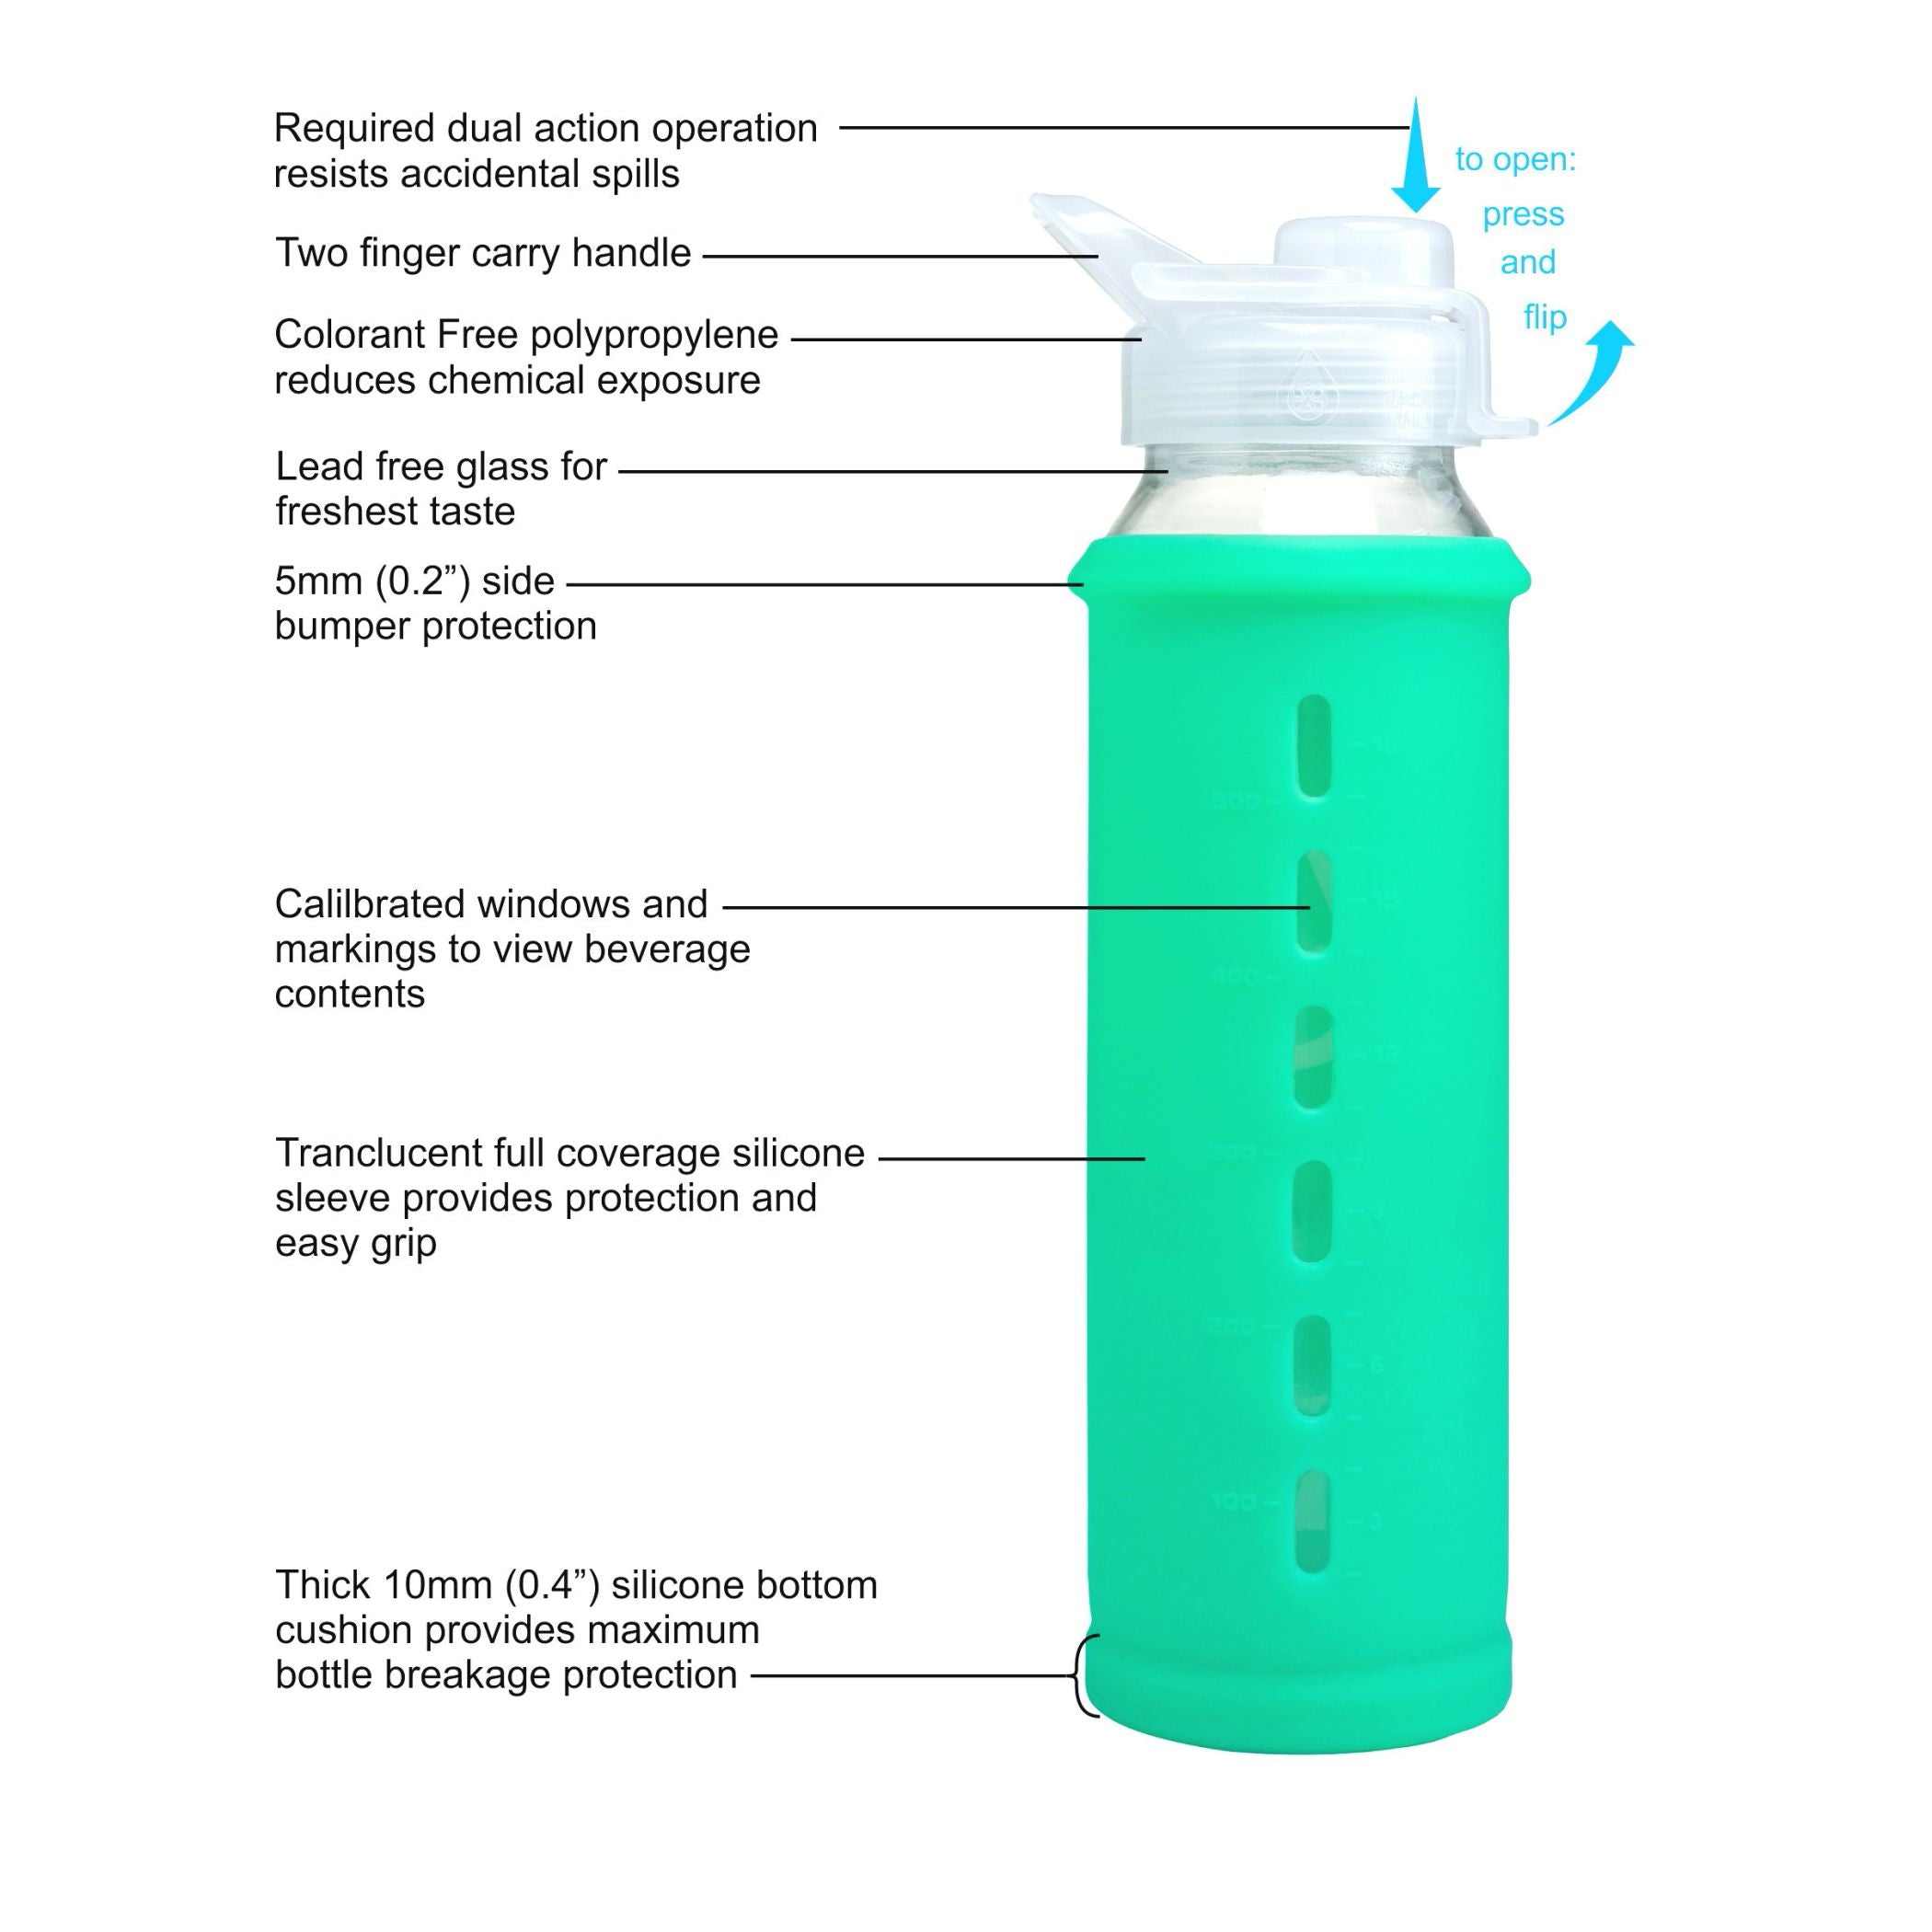 Eveau 21 oz. Glass Water Bottle with Bumperguard Silicone Sleeve & Flip Lid